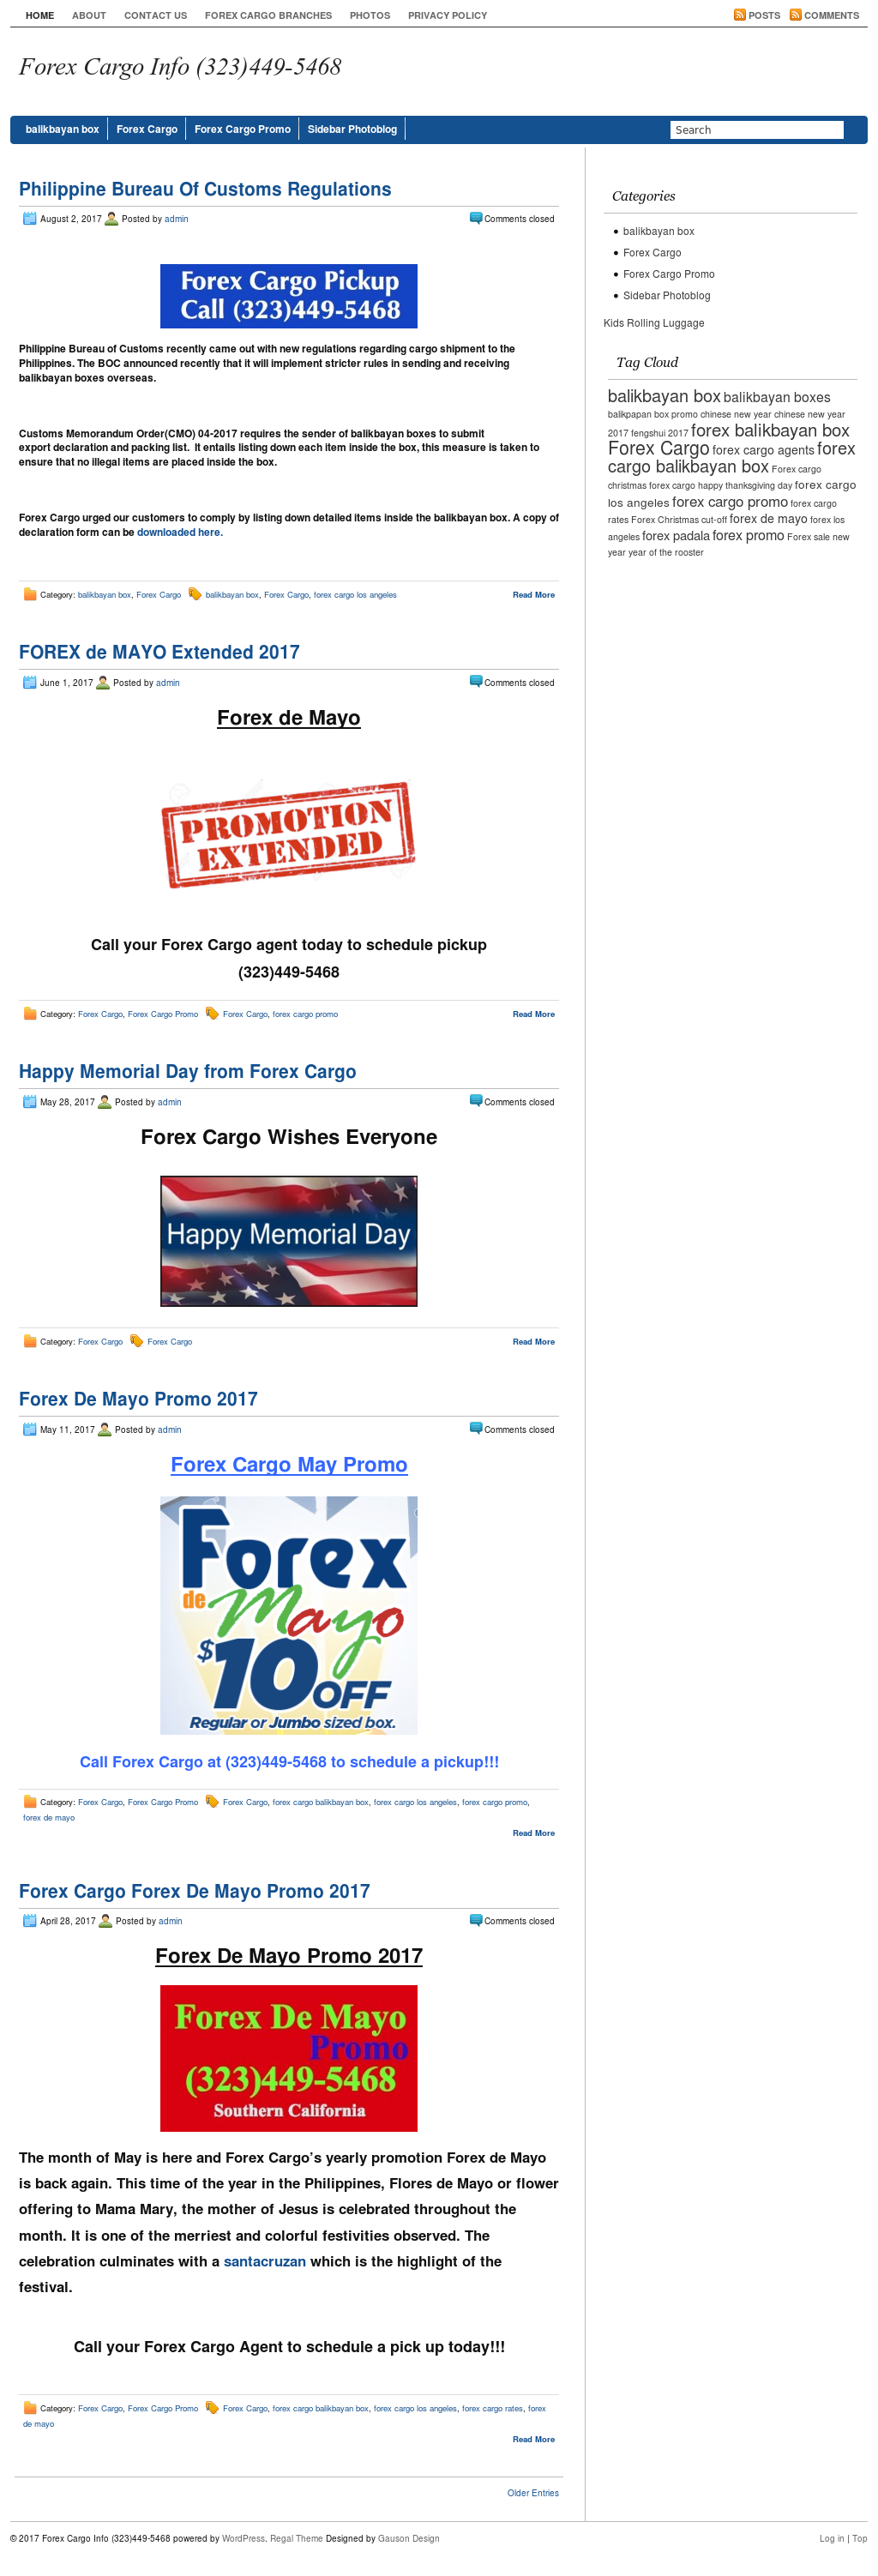 Forex Cargo Info Competitors, Revenue and Employees - Owler